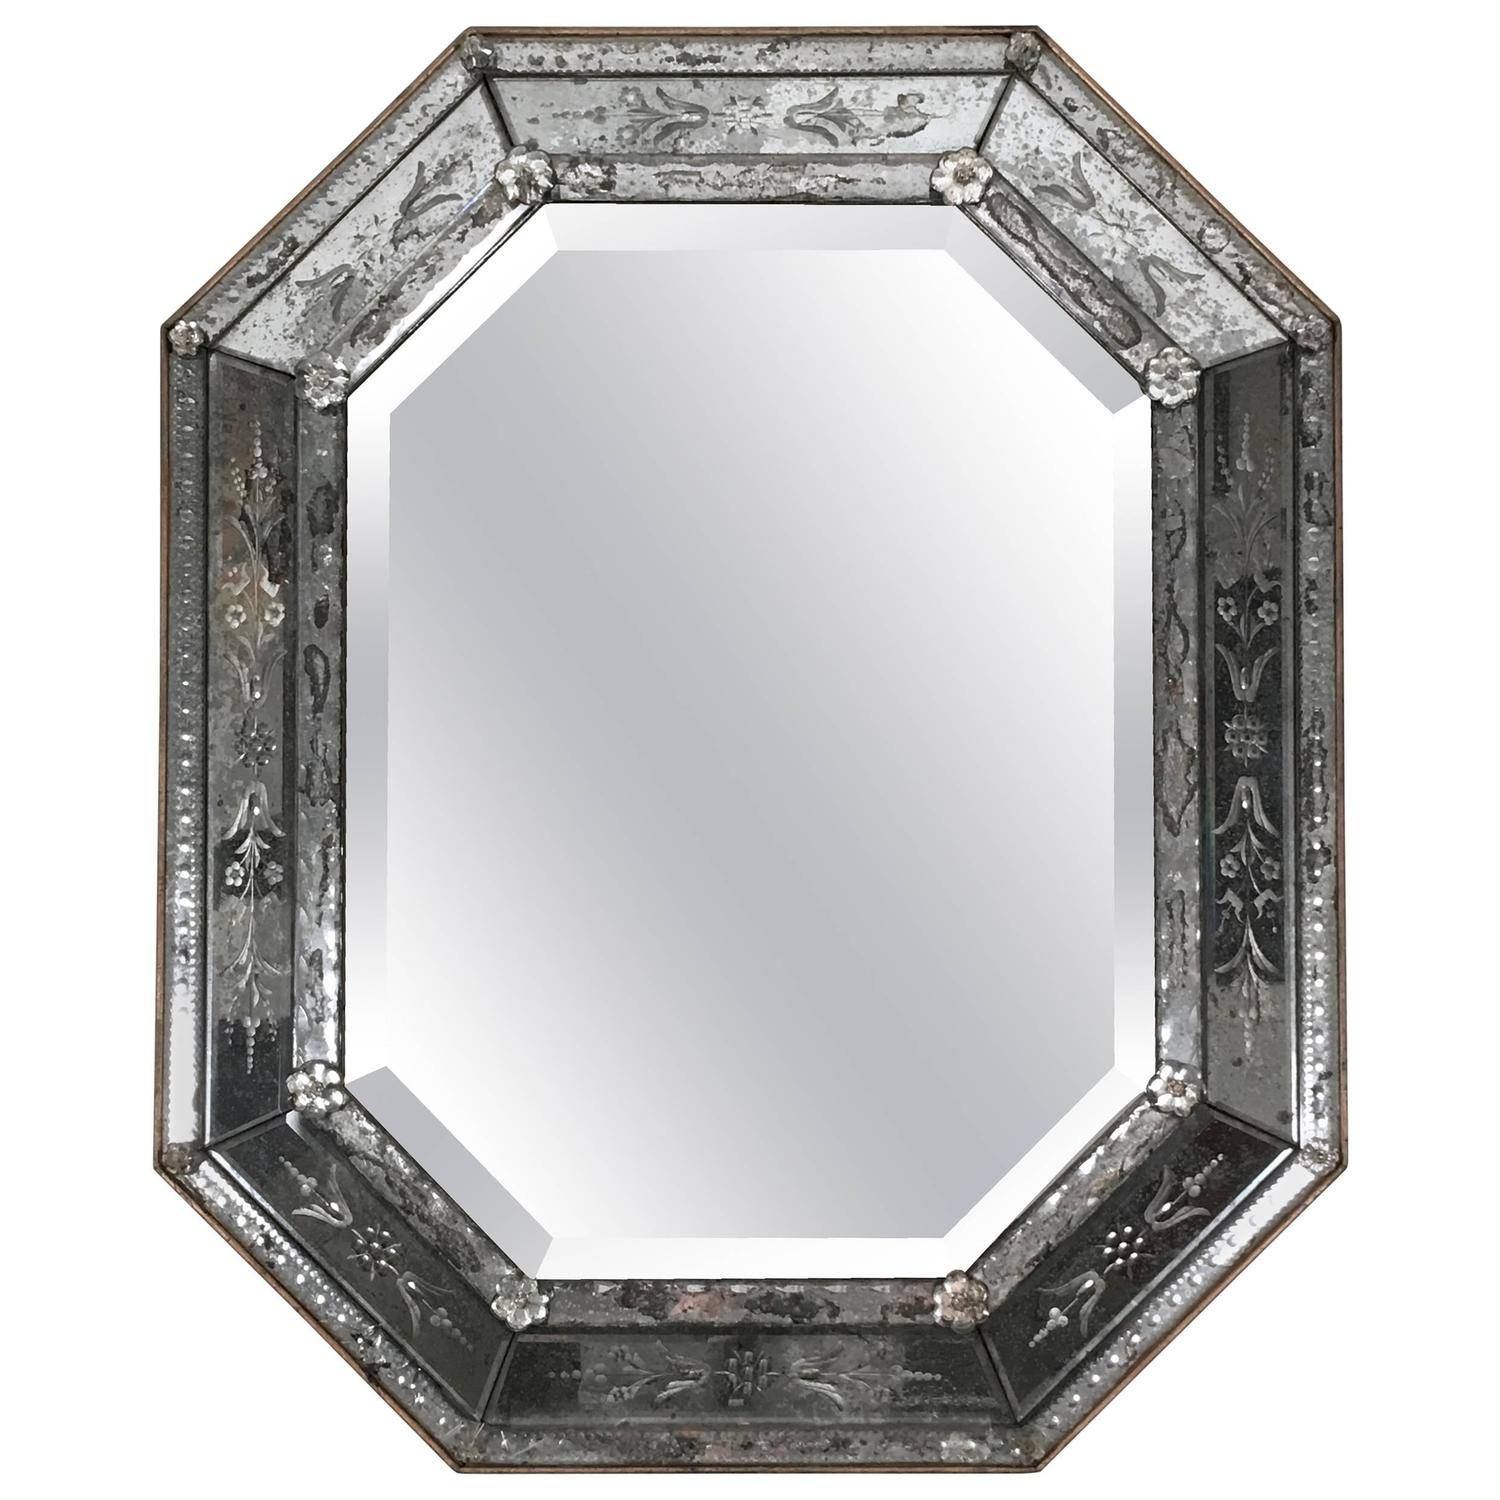 Venetian Etched Glass Octagonal Mirror At 1Stdibs intended for Square Venetian Mirrors (Image 22 of 25)